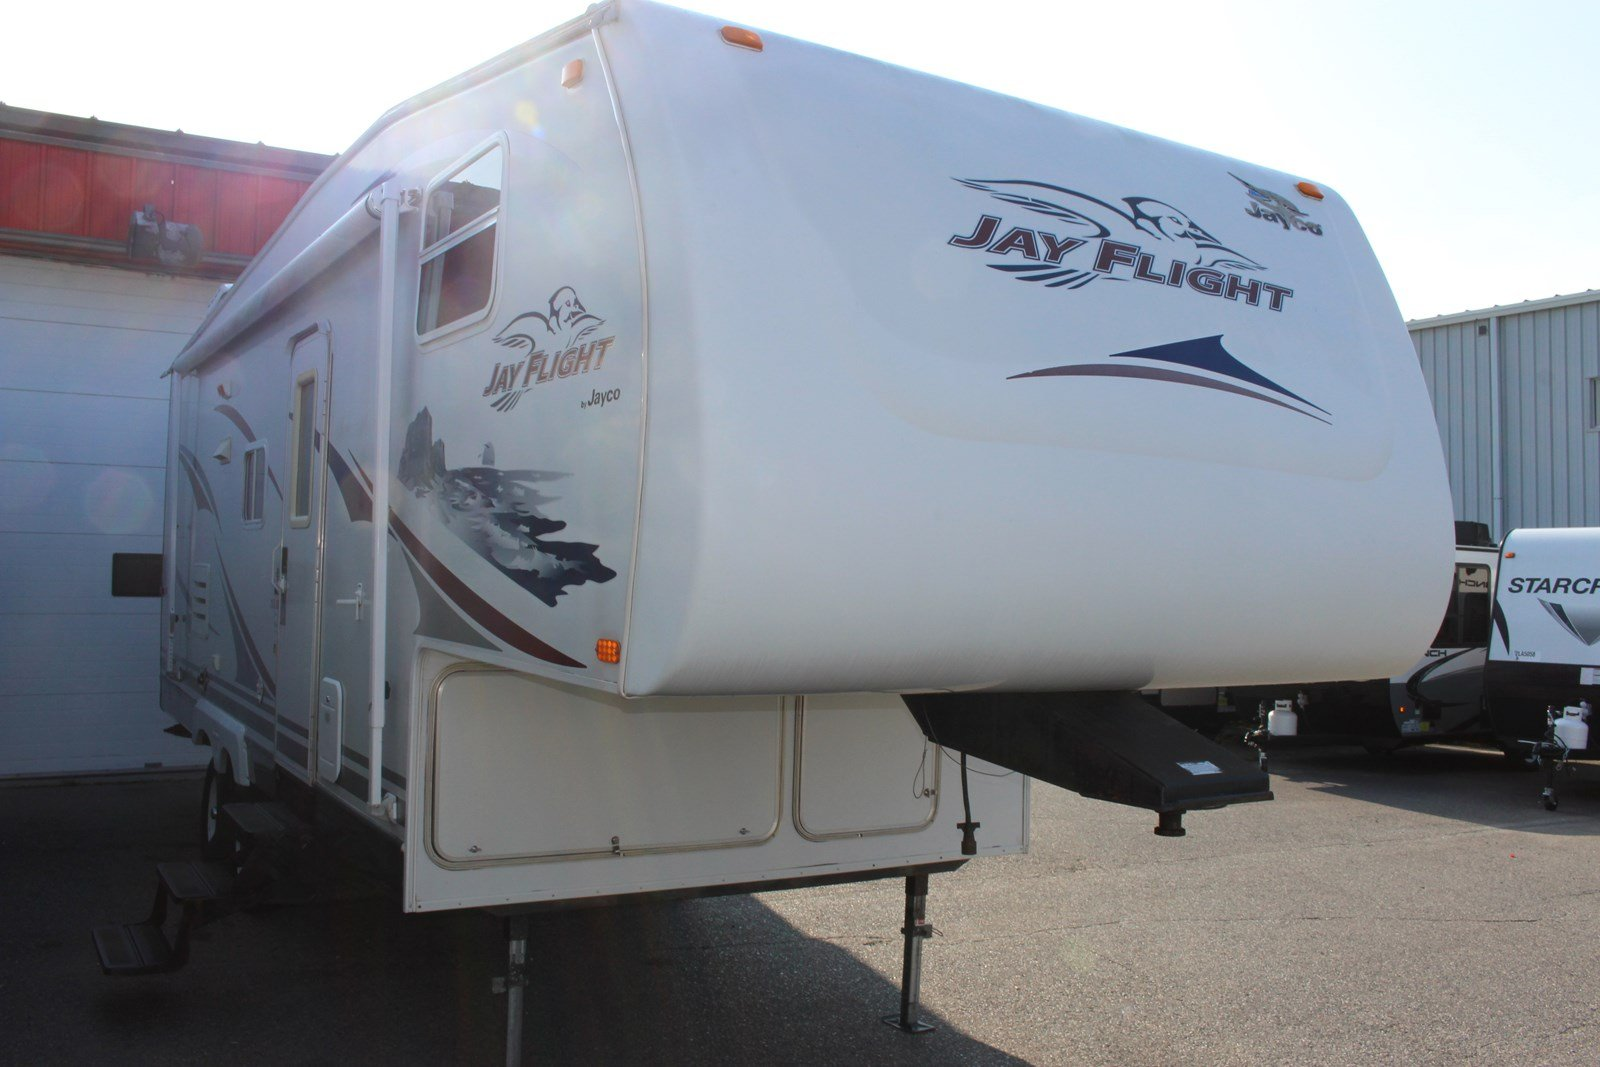 Pre-Owned 2007 JAYCO JAYFLIGHT 245RS